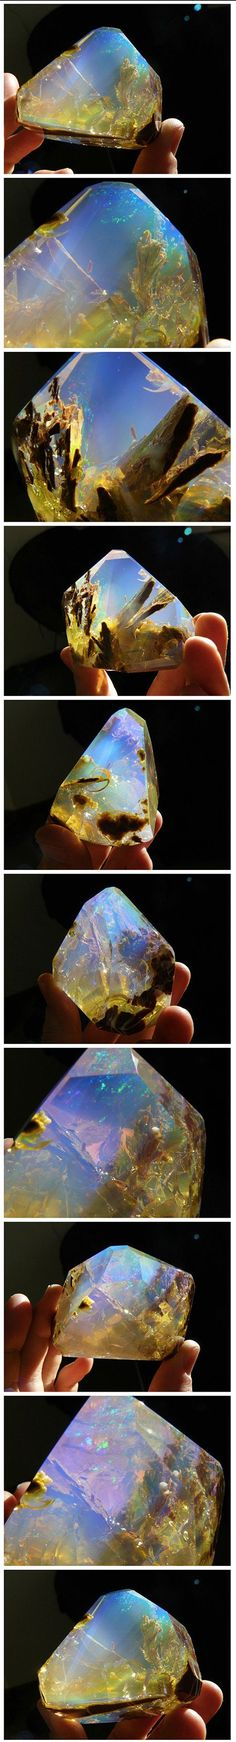 This amazing Crystal Opal is like a miniature piece of the ocean, frozen in time. #Gemstones #Opals #CrystalOpal